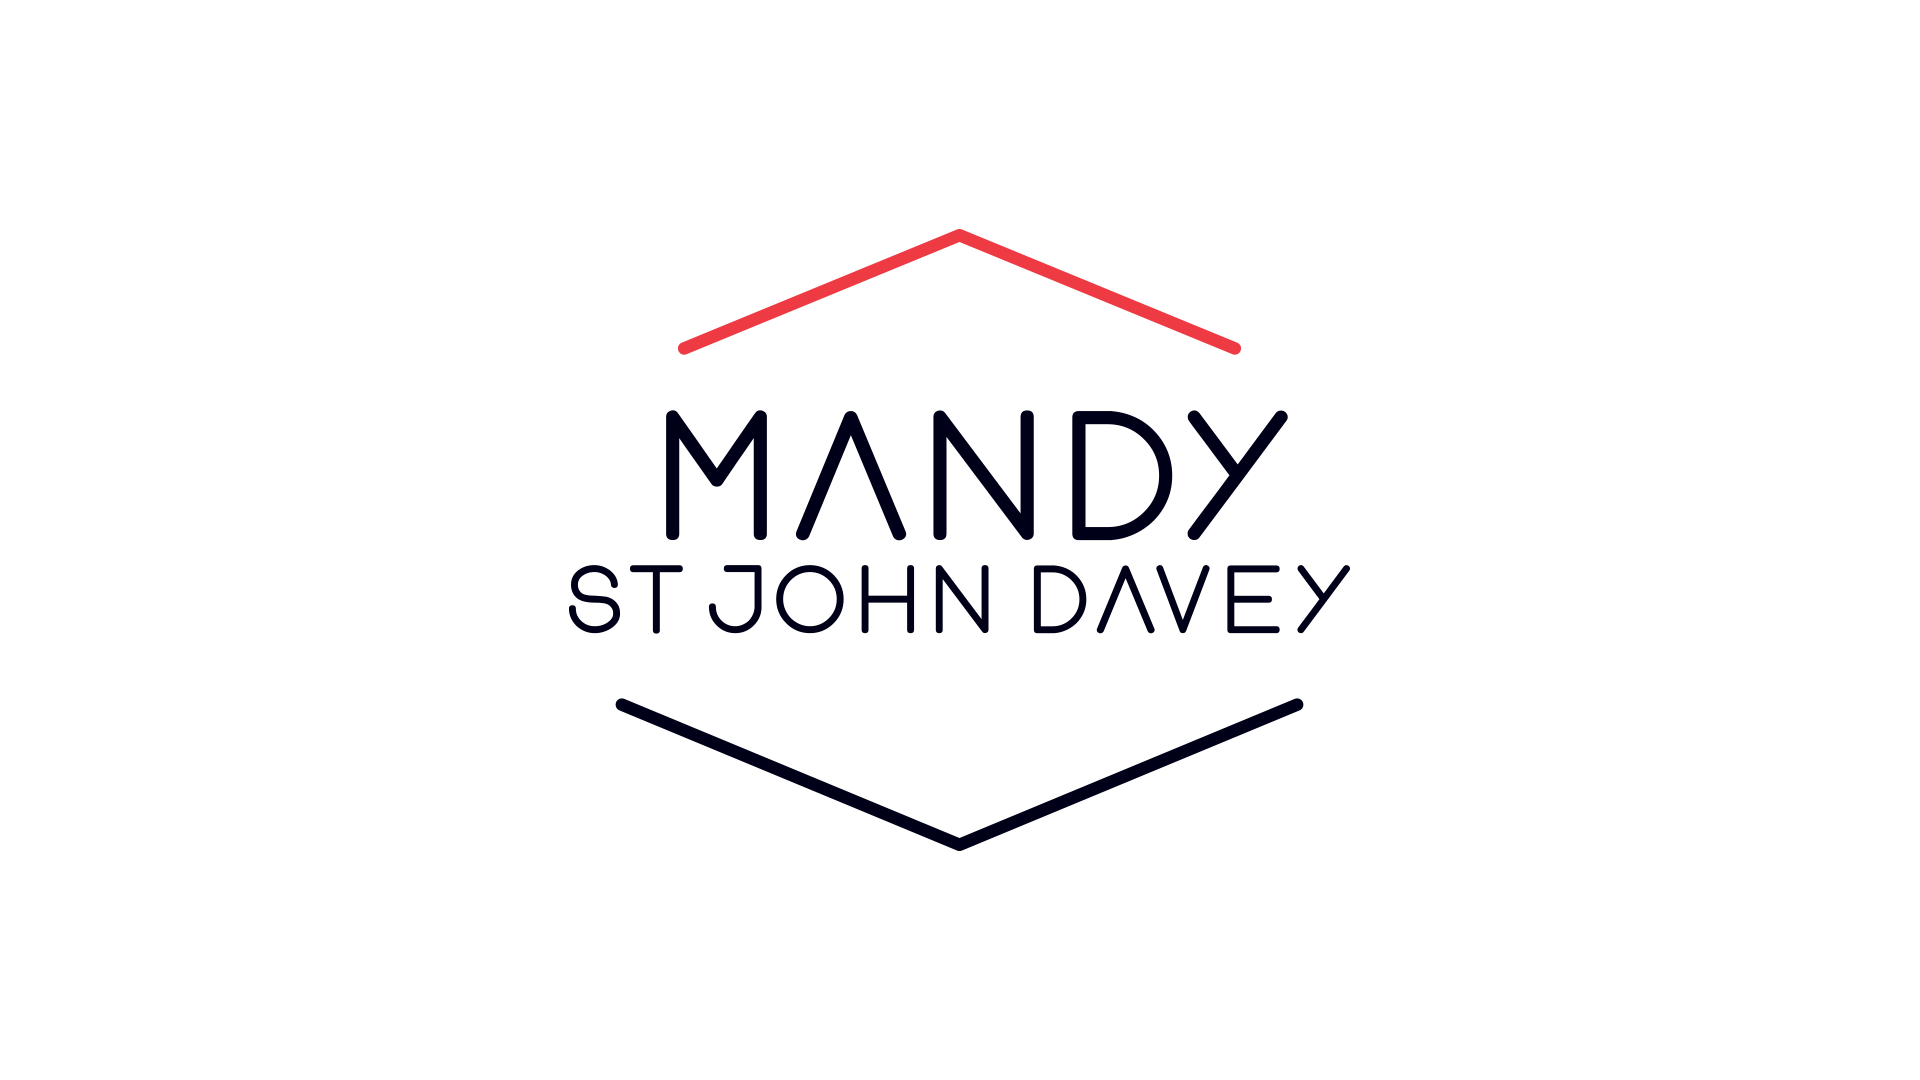 Mandy st john davey tantrwm video production assistance media film wales